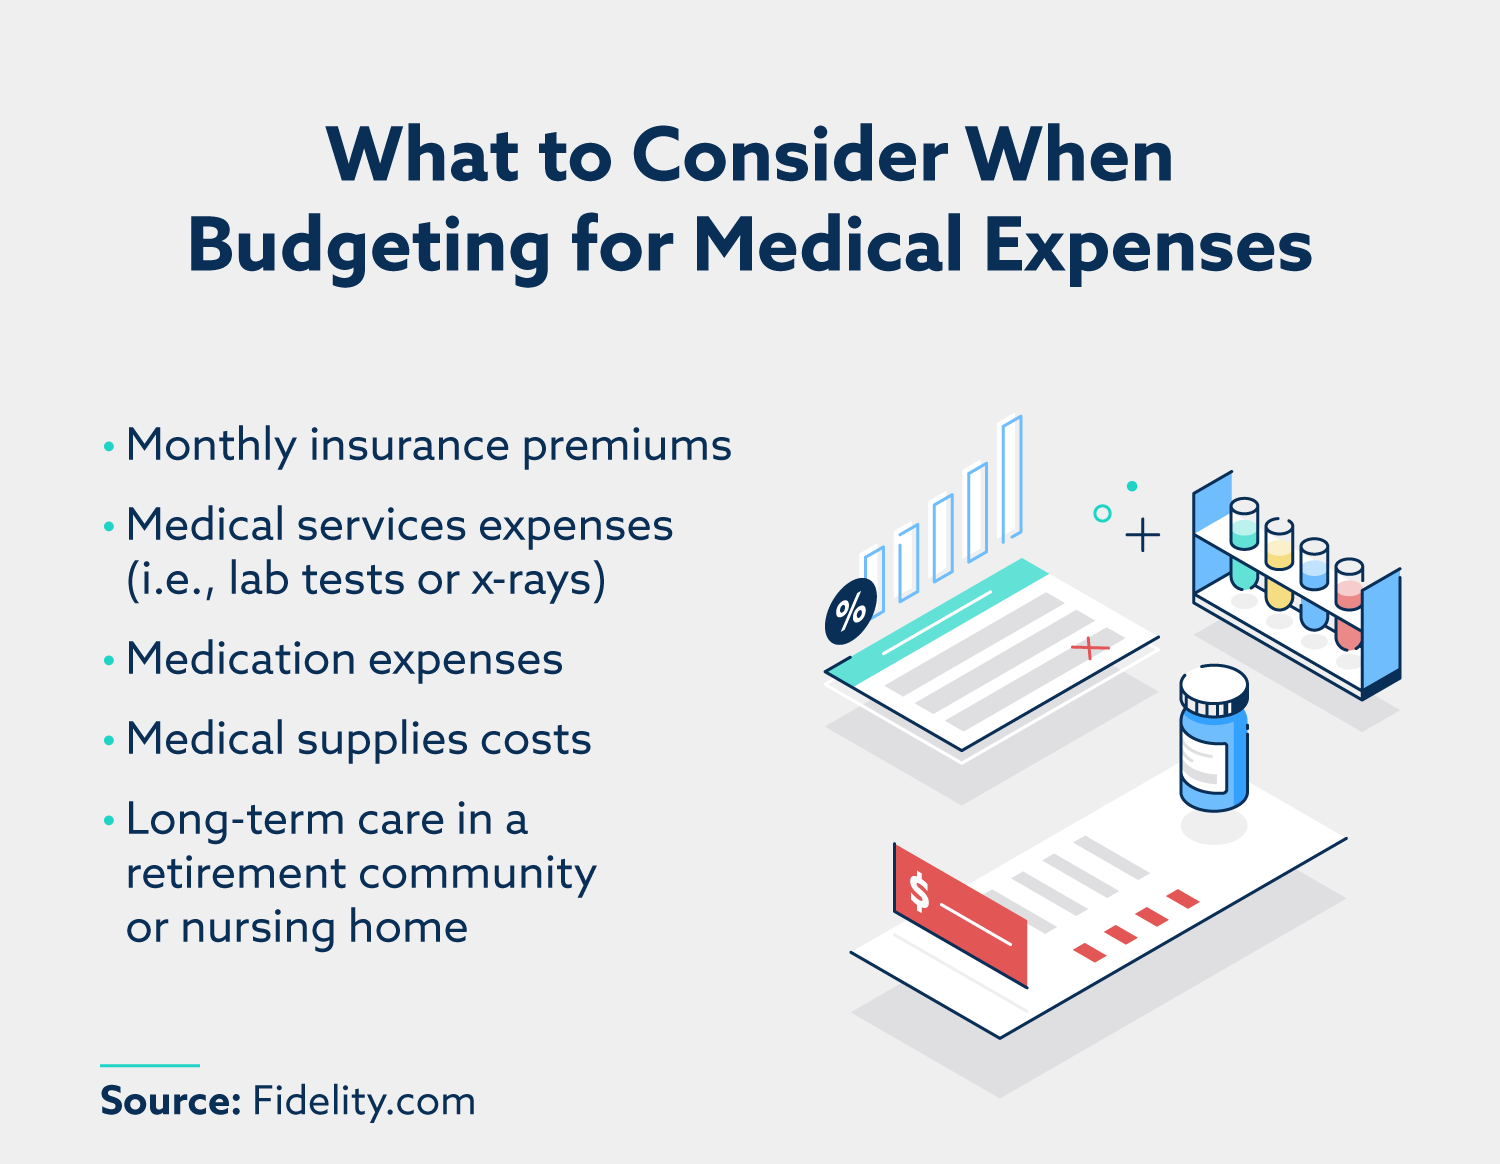 list of things to consider when budgeting for medical expenses